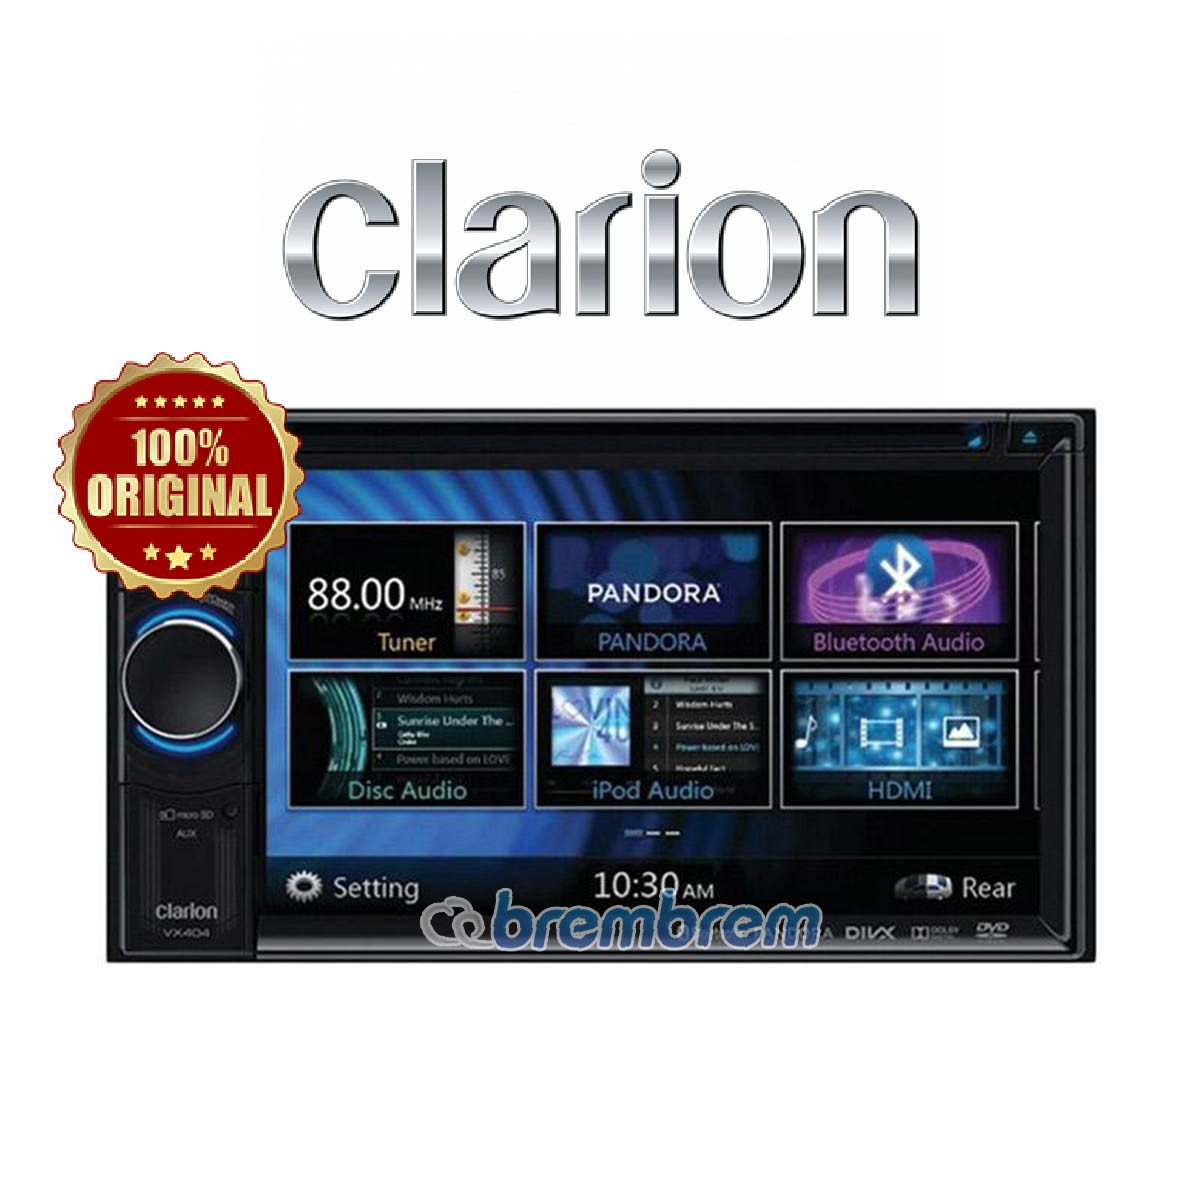 CLARION NX 404 A (GPS NAVIGASI) - HEADUNIT DOUBLE DIN